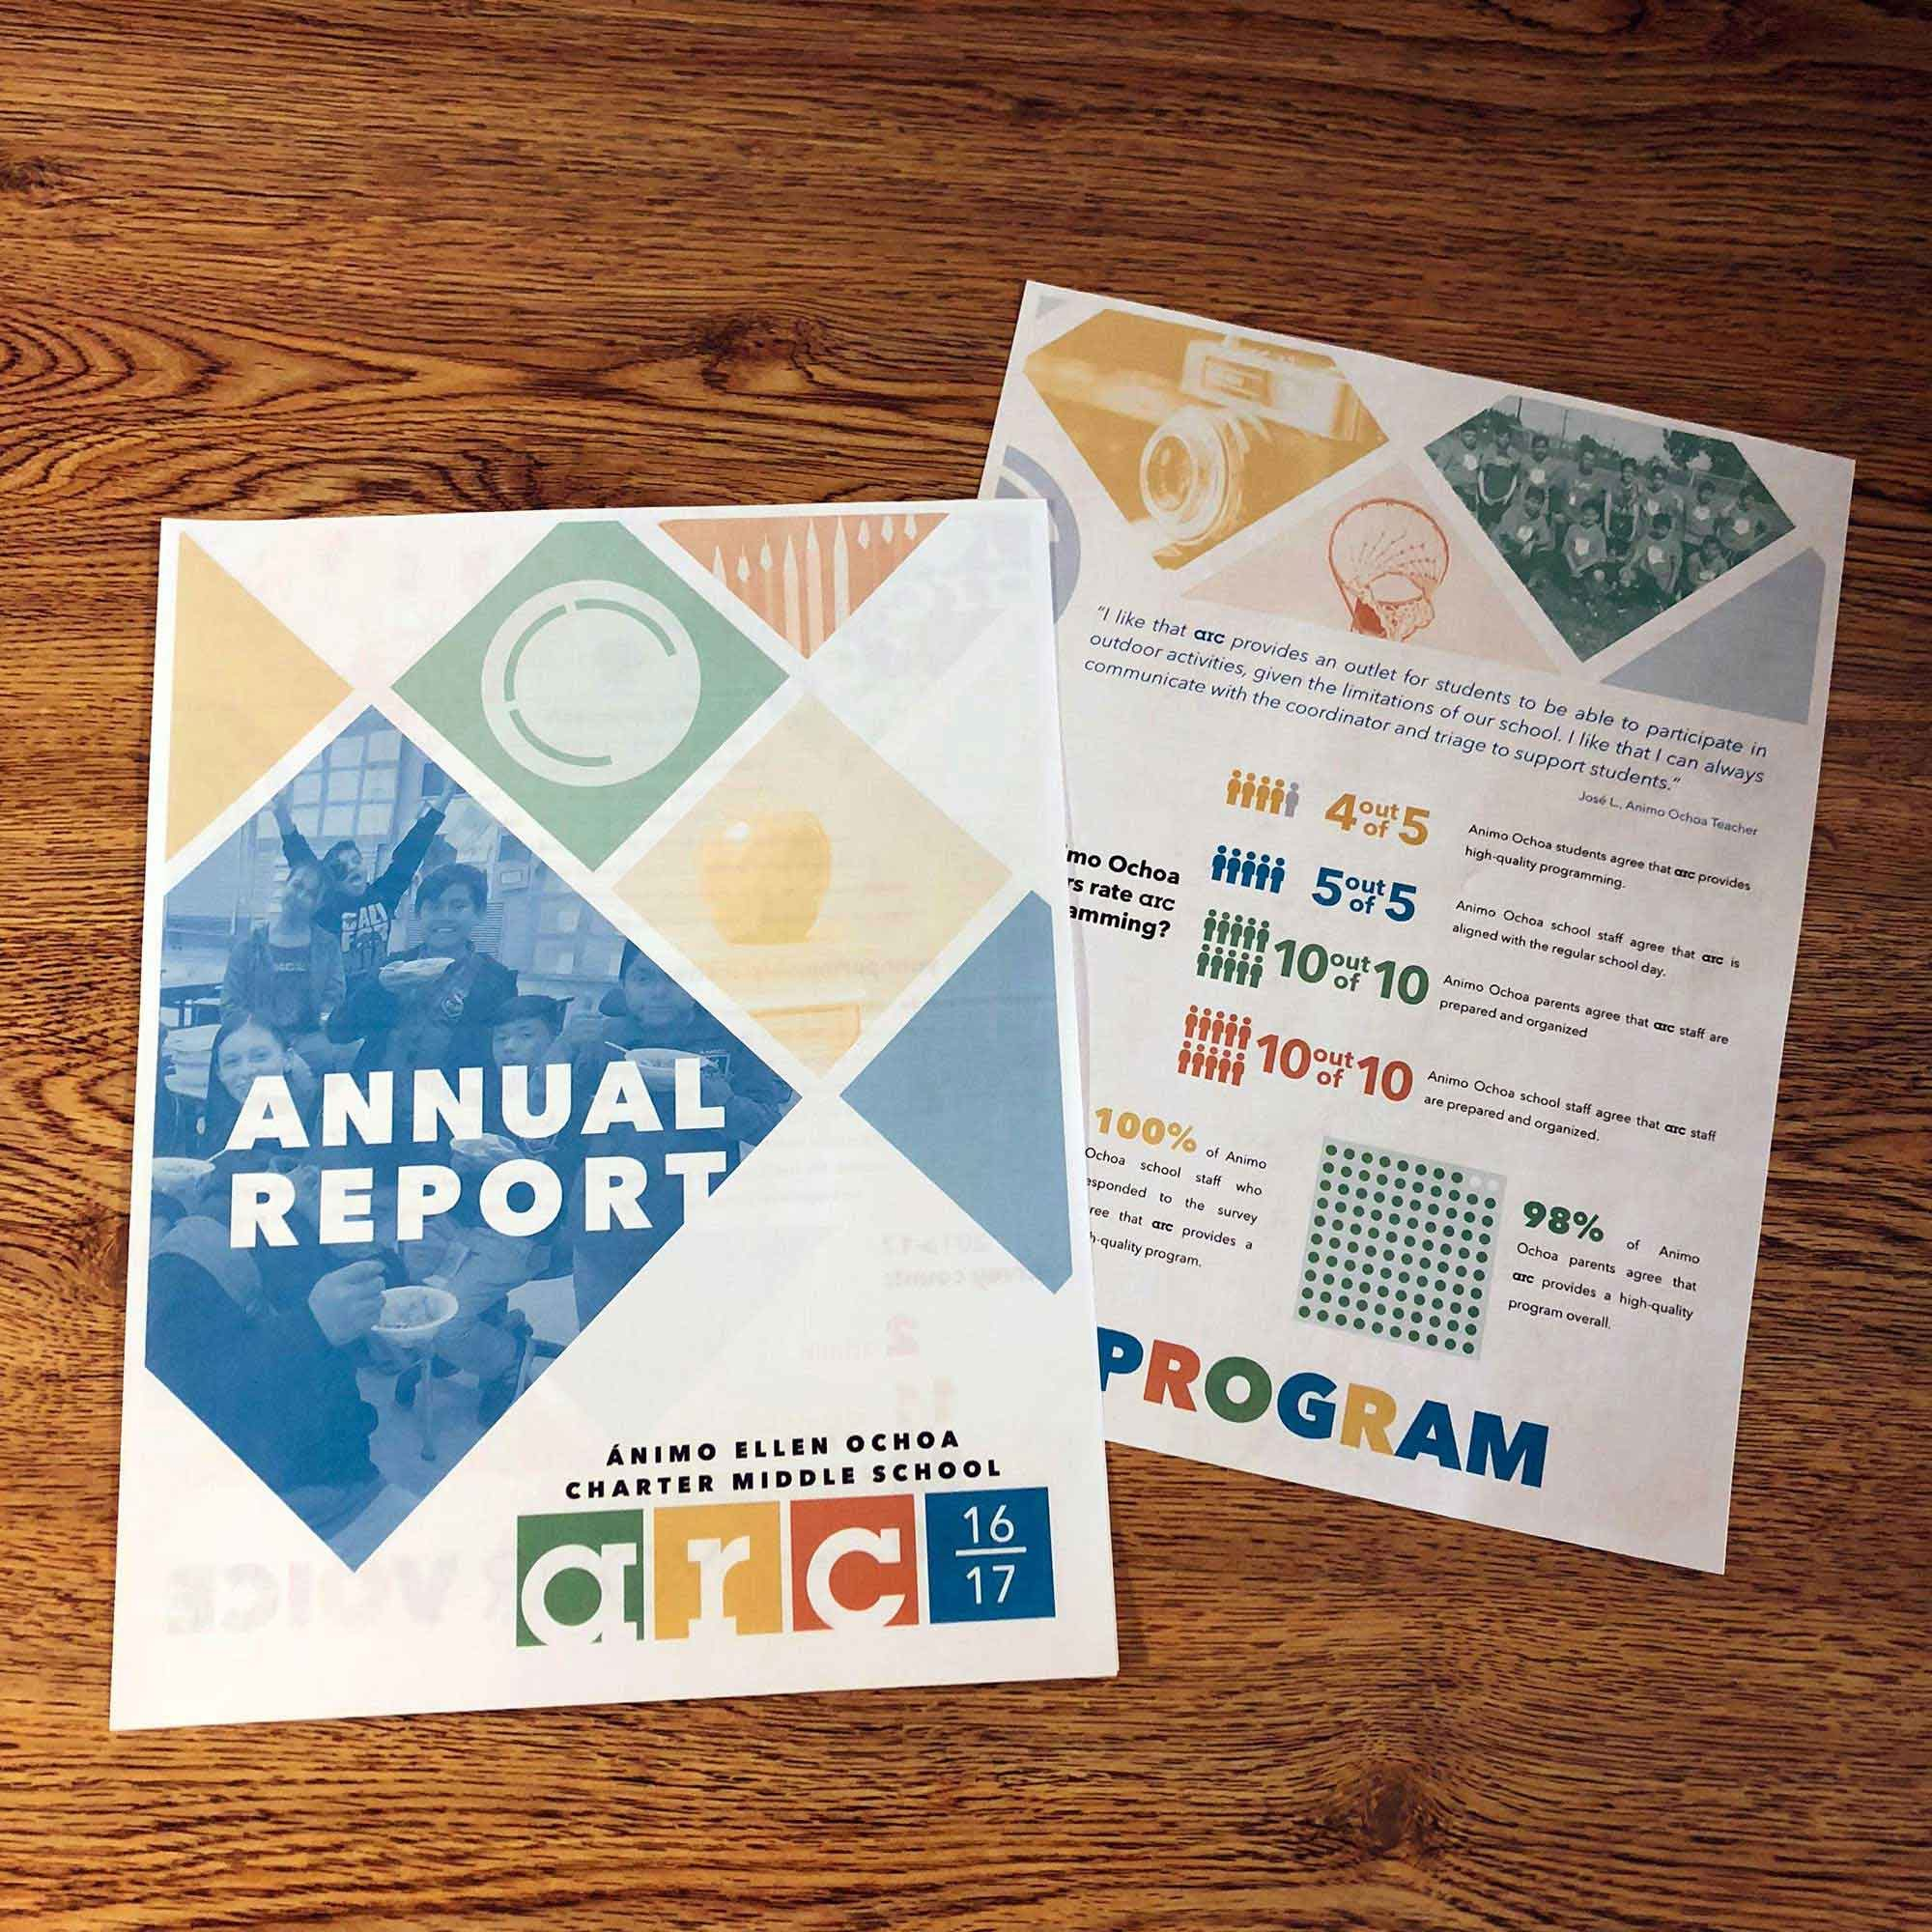 Annual-Report-Animo-Ochoa-2000x2000